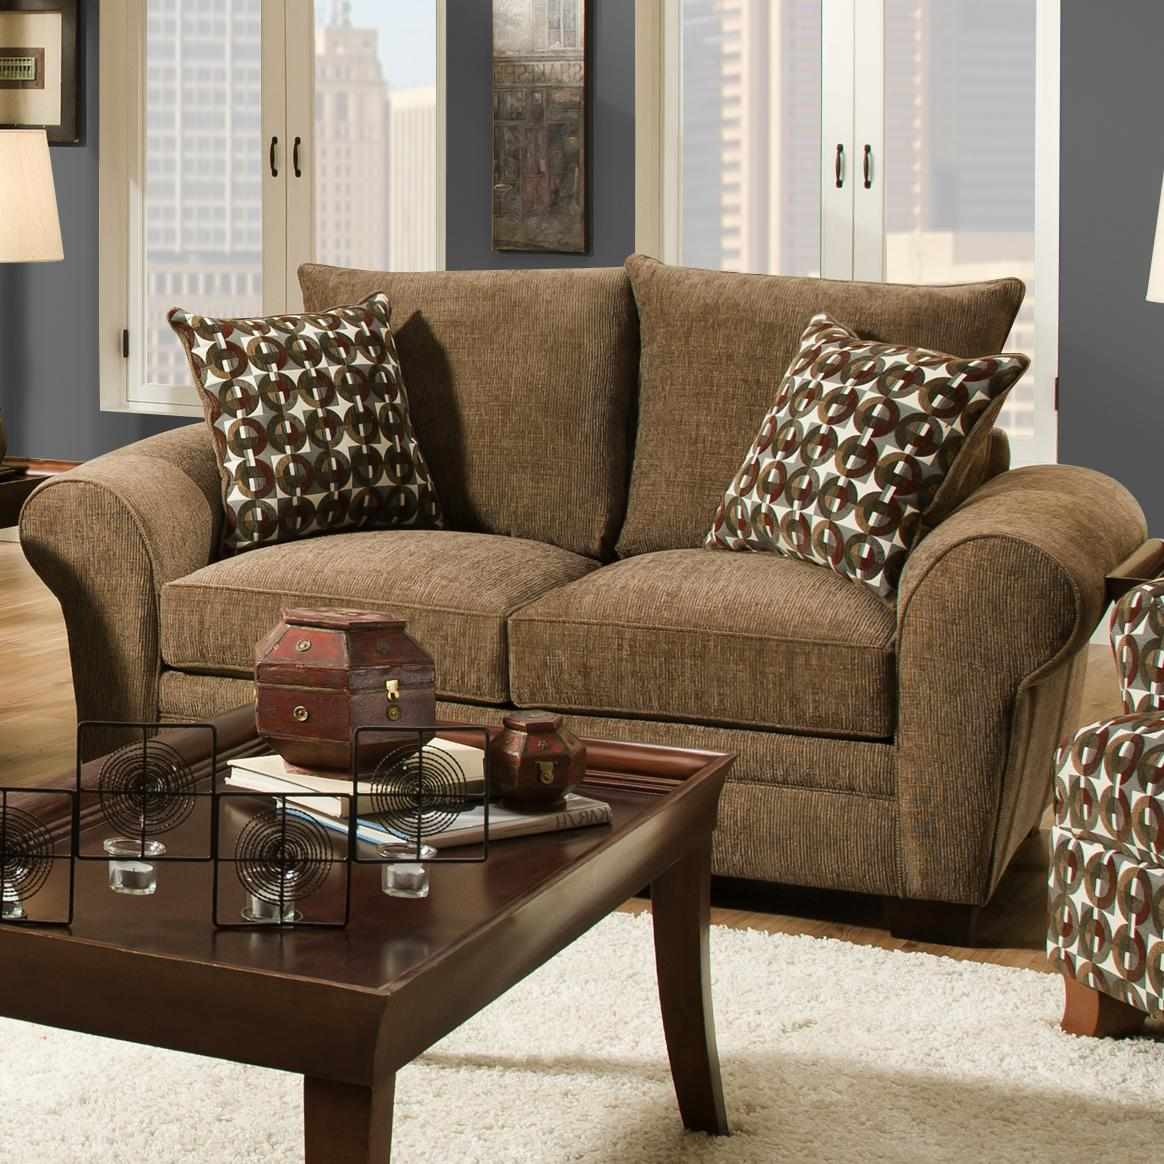 Comfortable Living Room Dimensions: Traditional Styled Loveseat With Comfortable Look For